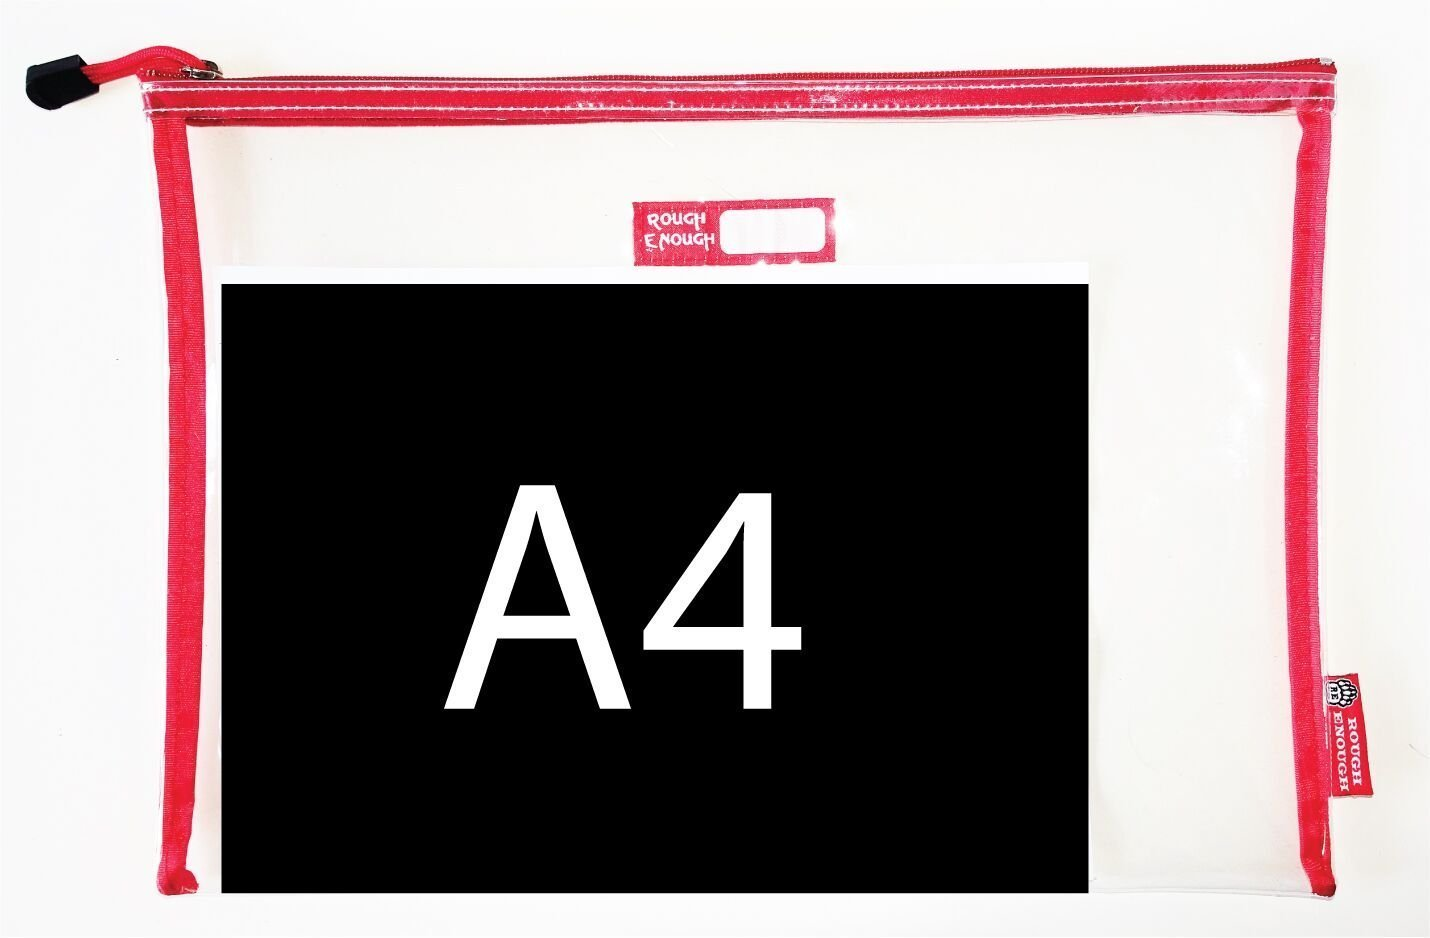 Rough Enough Durable Transparent Clear Classic Multi-Functional Big Document Pouch with Zipper A4 Size Important Storage File Holders Large Folder for Filing Organizer TSA School Business Travel by RE ROUGH ENOUGH (Image #2)